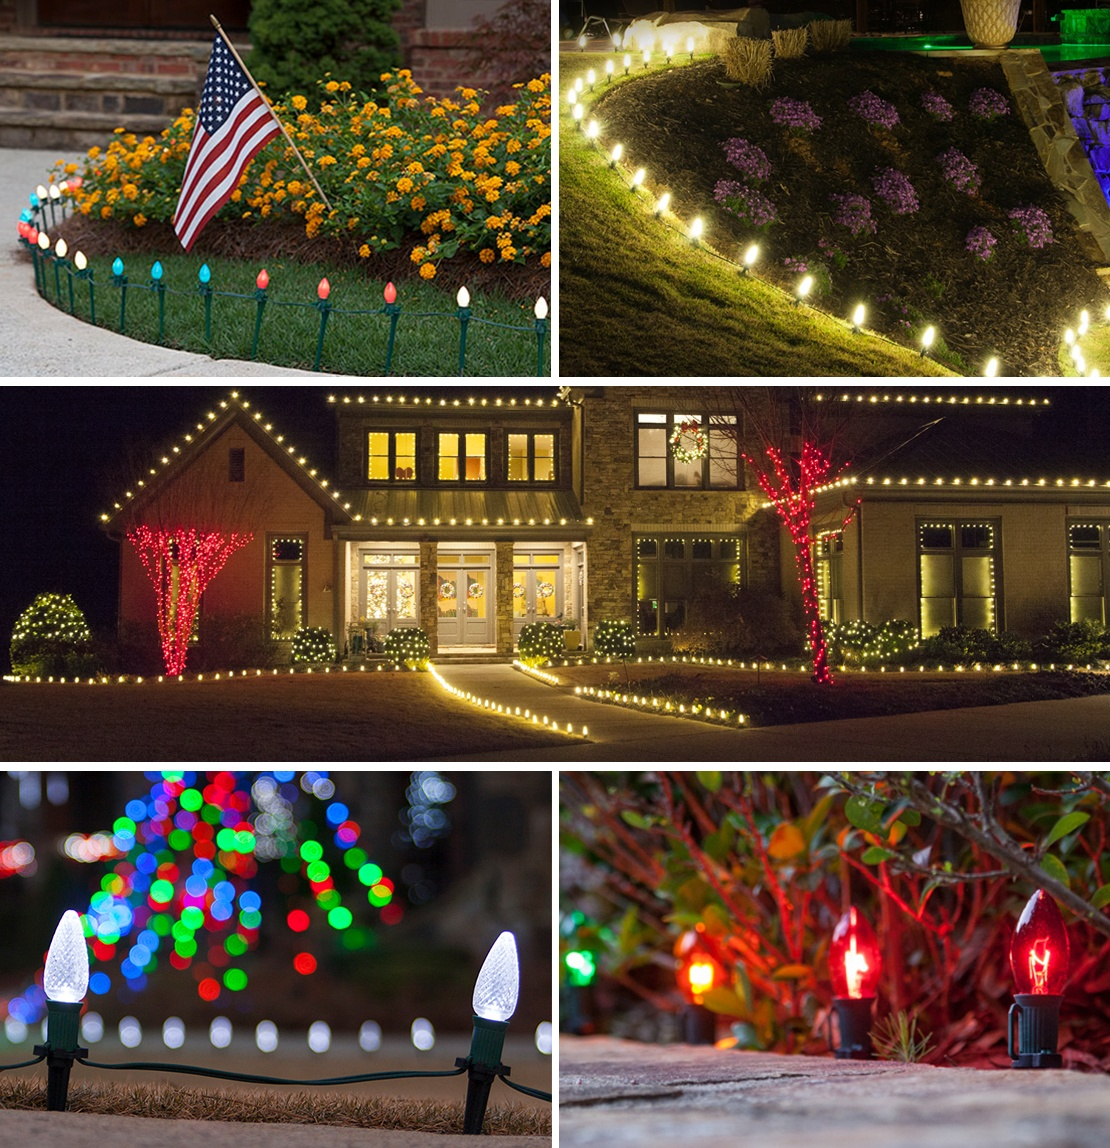 5 Pathway Lighting Tips Ideas Walkway Lights Guide: Pathway Christmas Lights